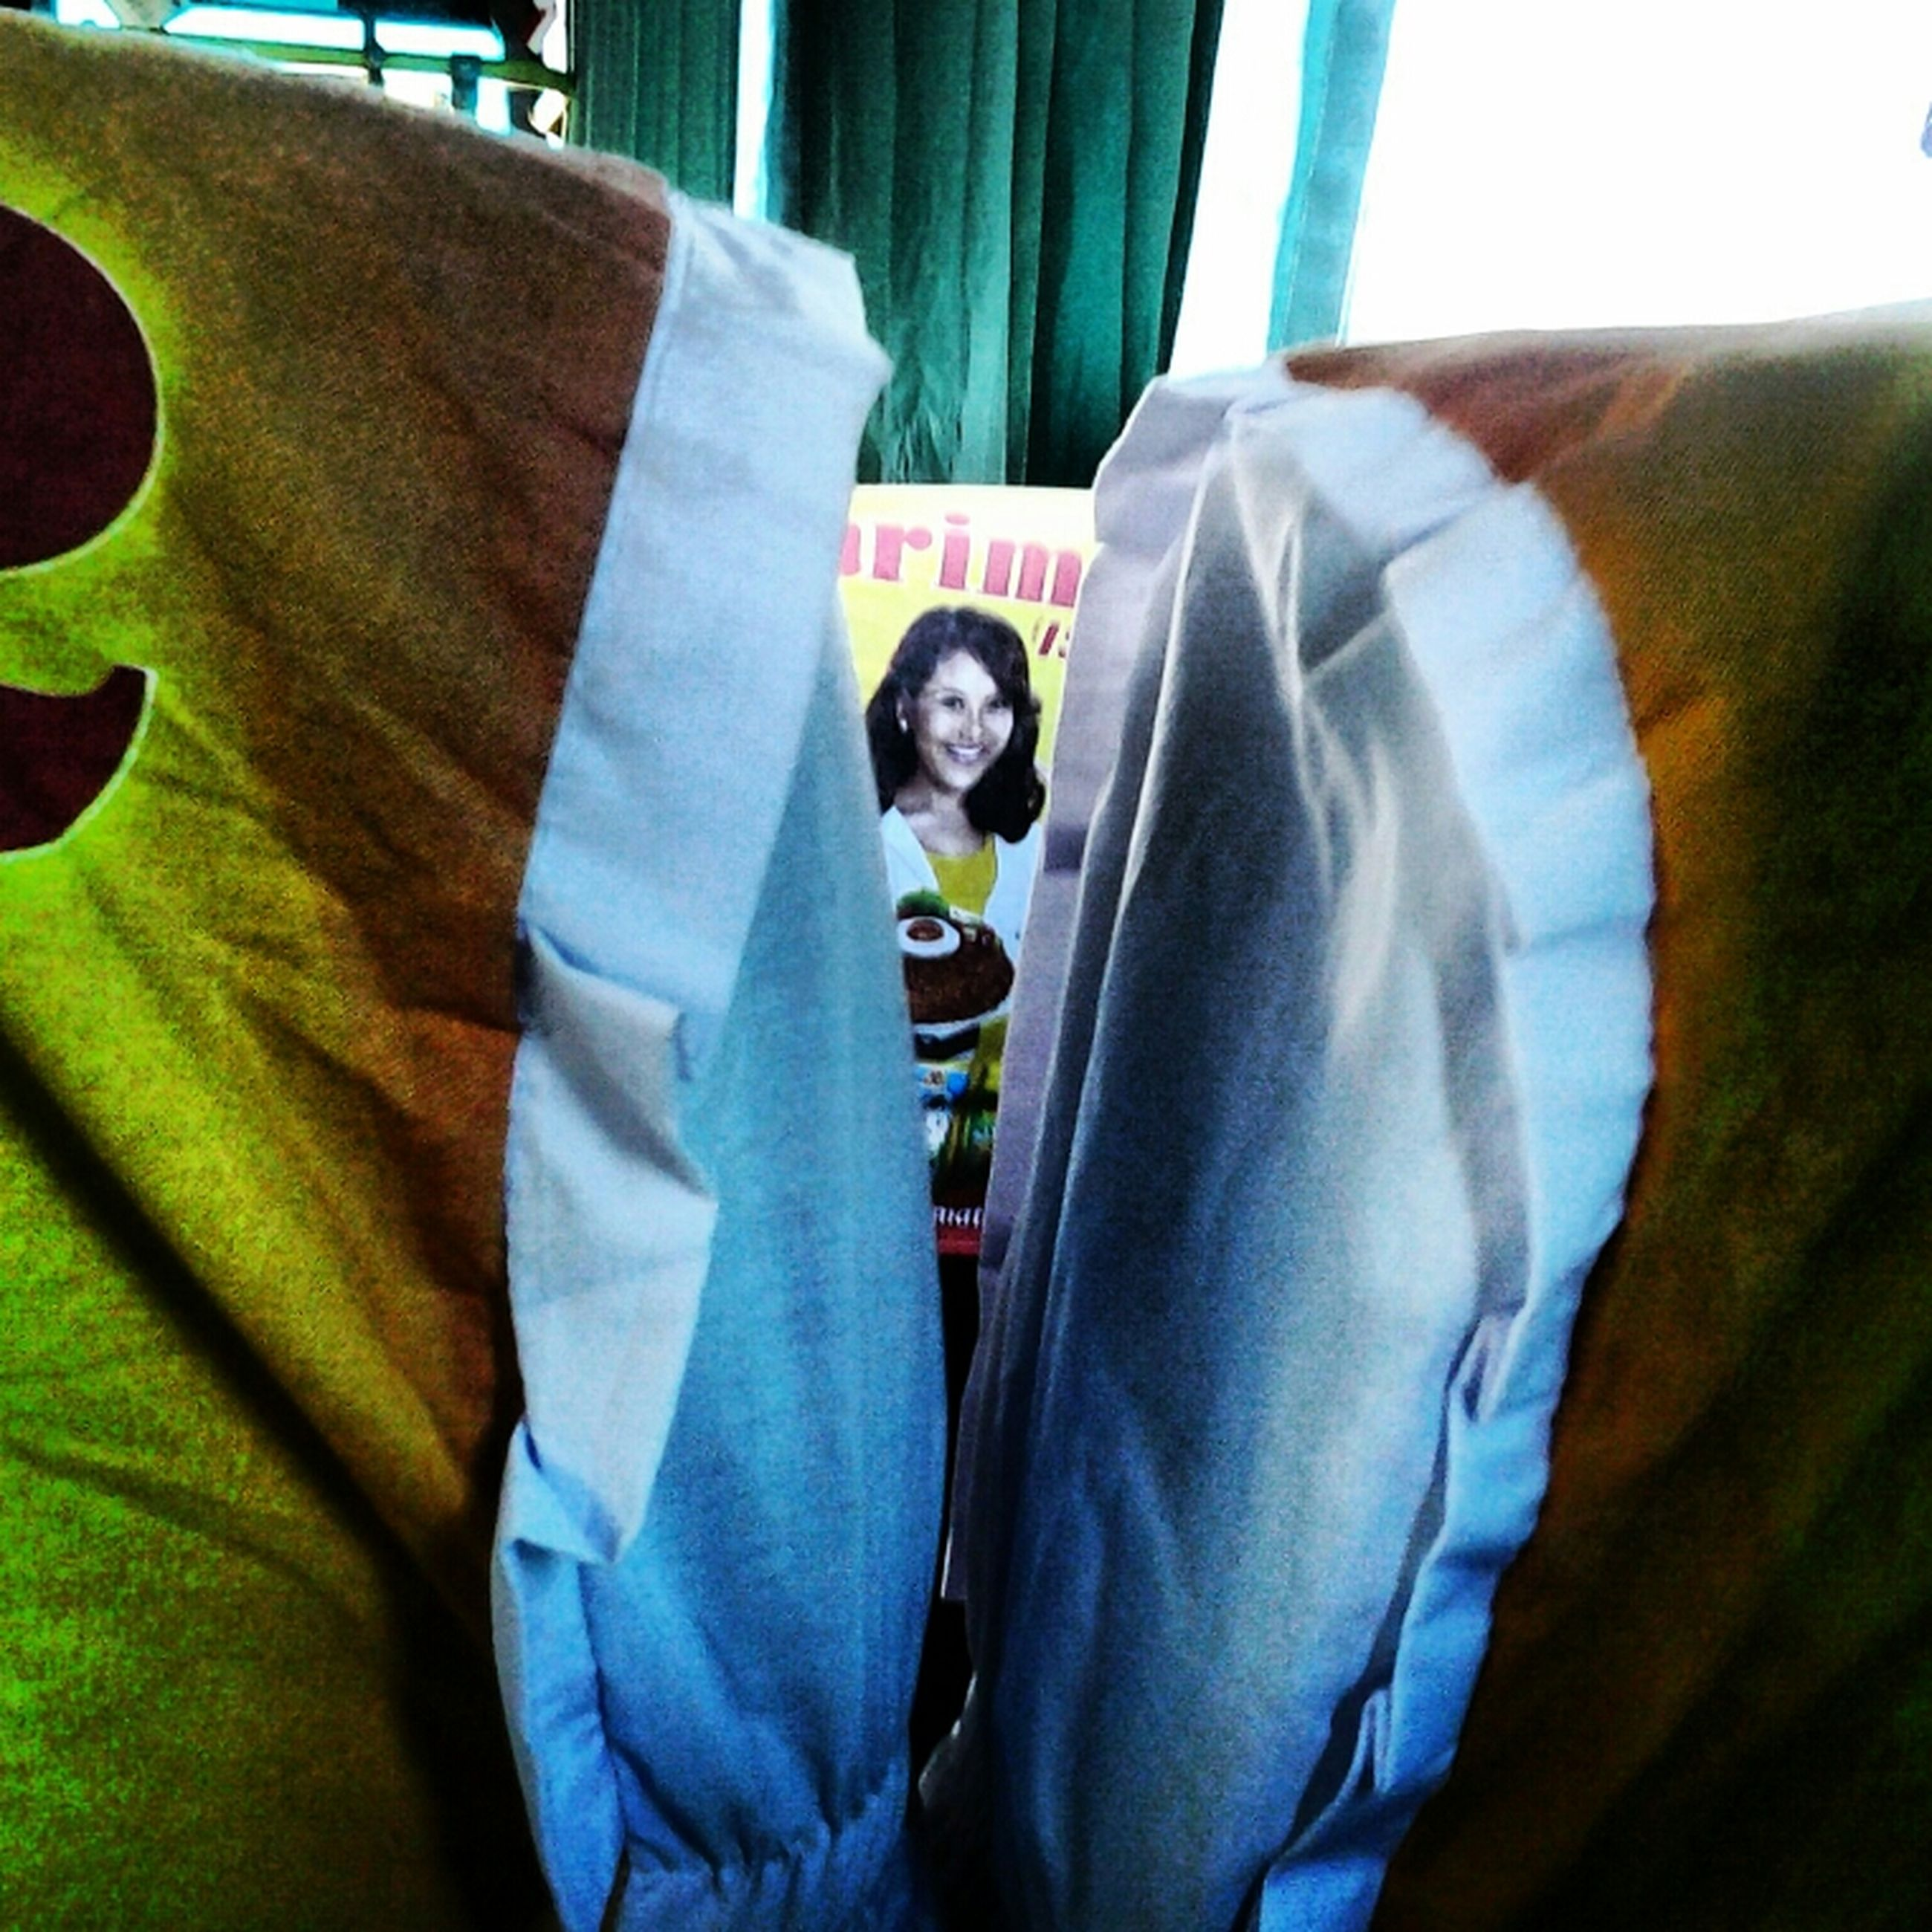 indoors, casual clothing, lifestyles, front view, bed, fabric, jeans, warm clothing, home interior, close-up, leisure activity, looking at camera, textile, relaxation, sitting, portrait, day, men